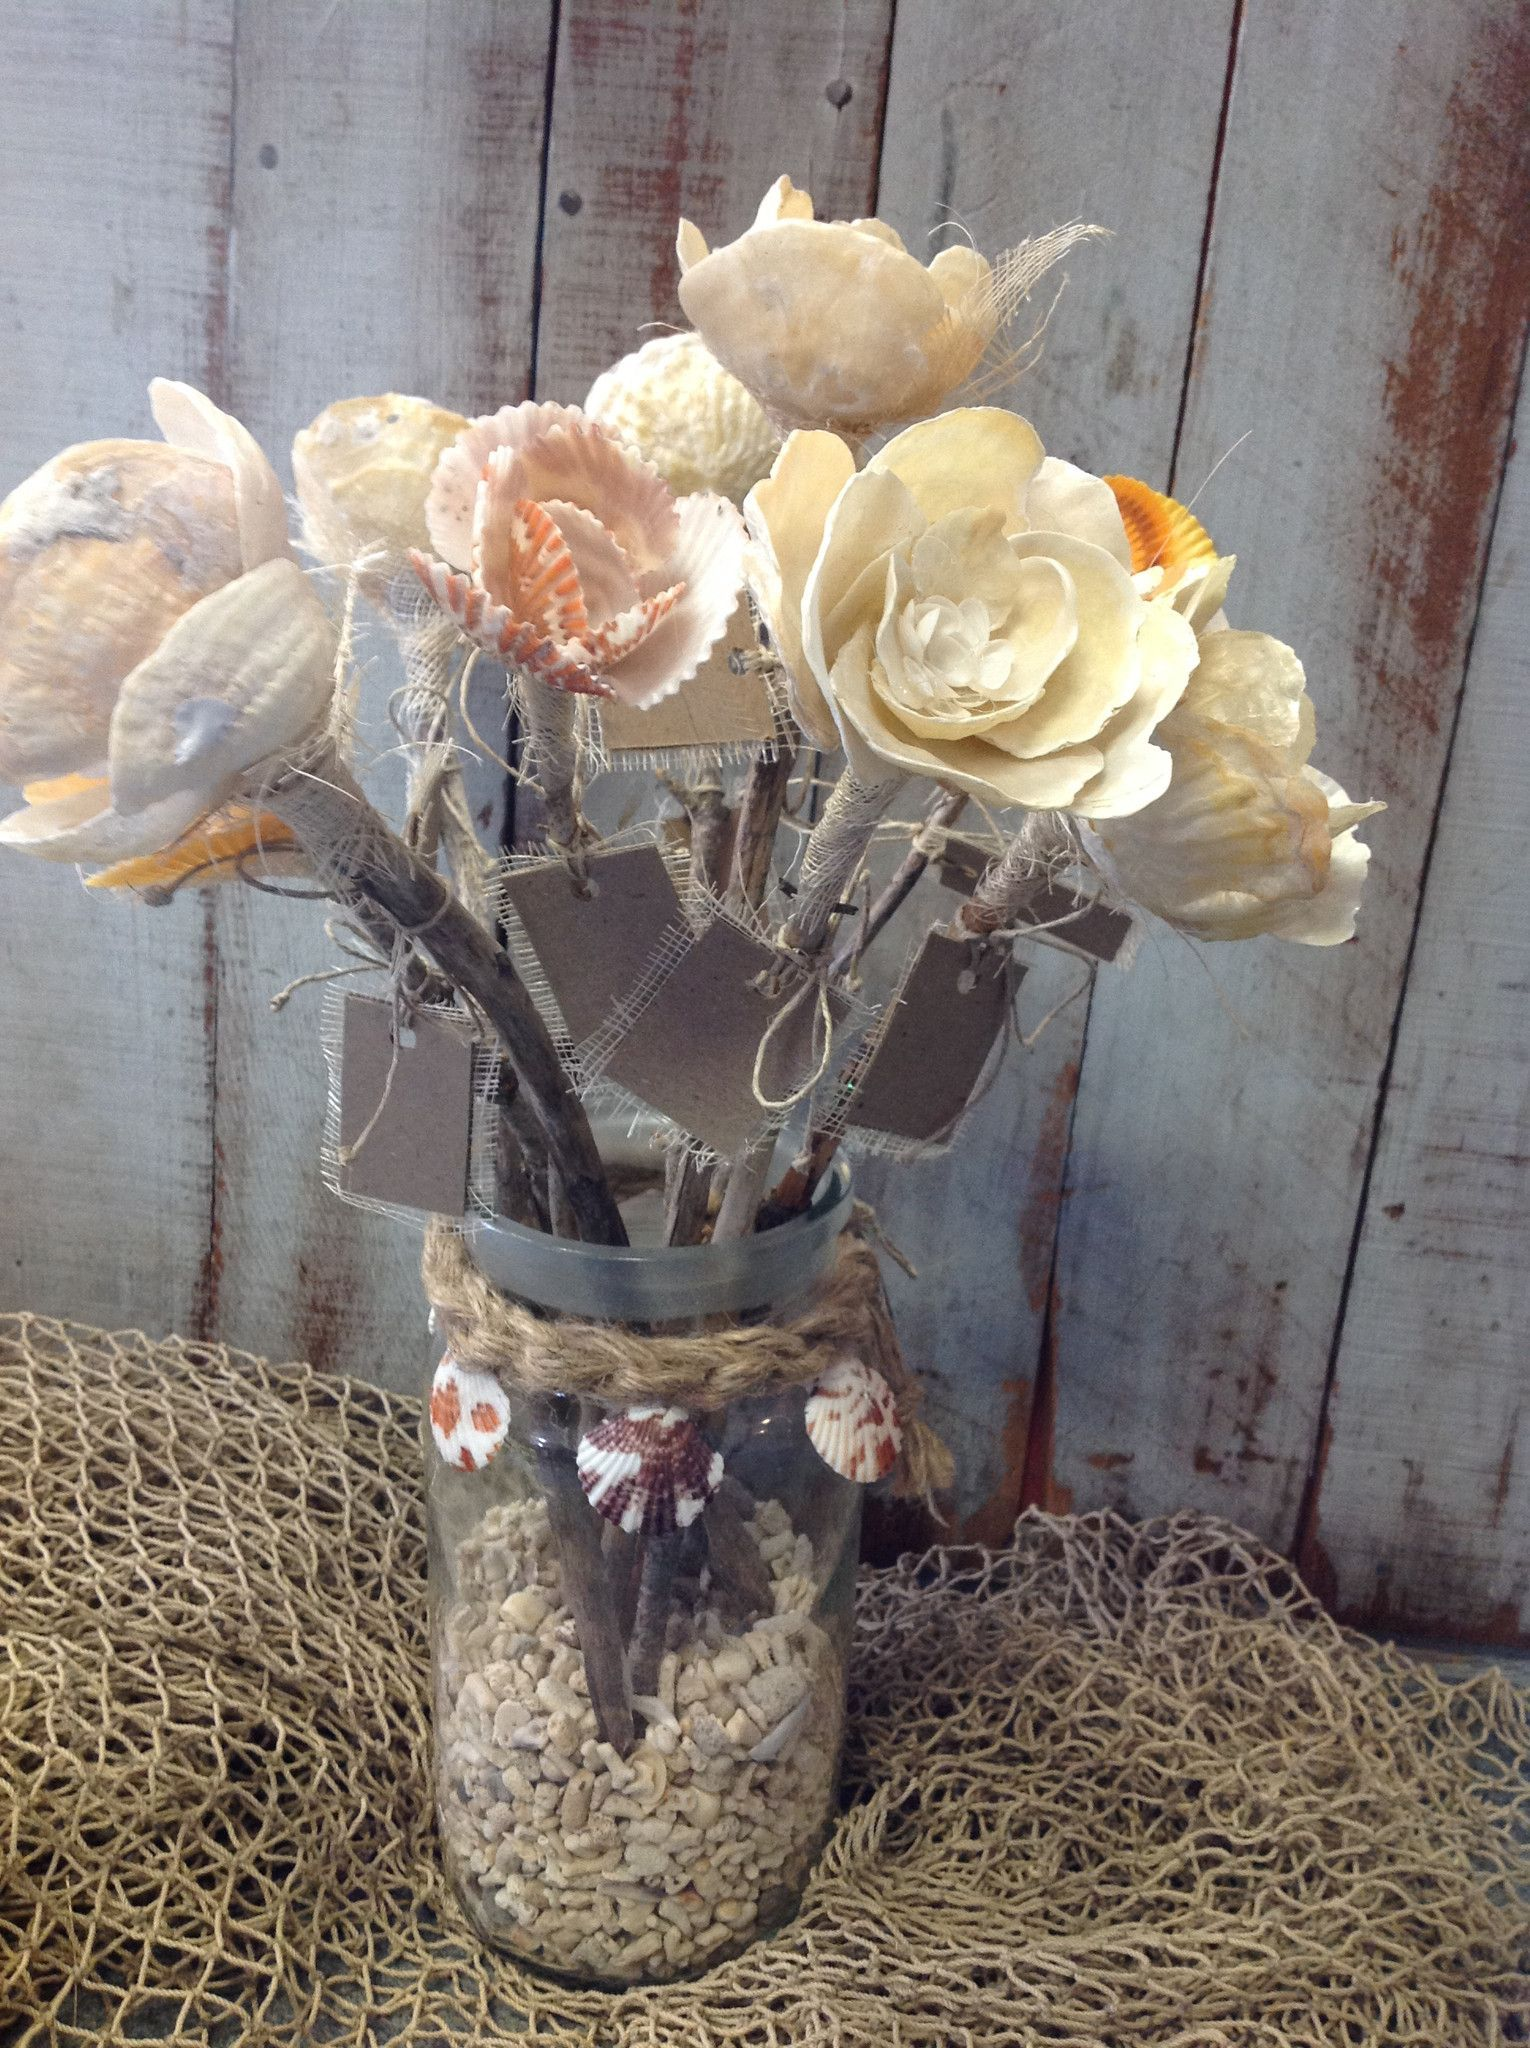 Seashell flowers sea shells pinterest natural flower and shell straight from a mermaids garden these beautiful handmade flowers are made from natural seashells all colors are natural if there is a specific flower izmirmasajfo